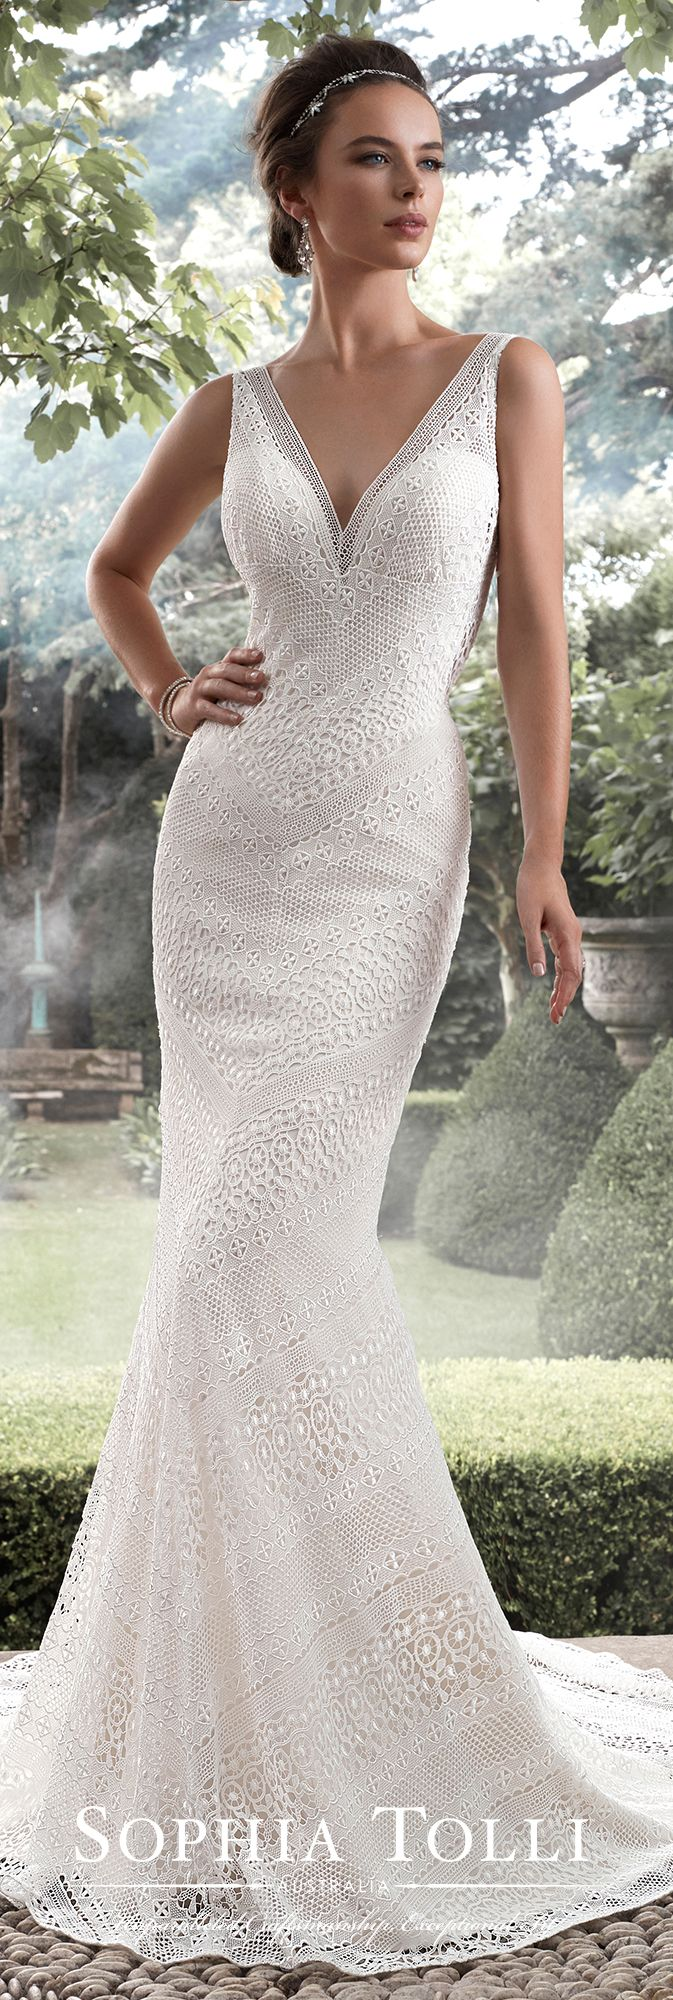 Sophia Tolli Fall 2017 Wedding Gown Collection - Style No. Y21742 Aquarius - sleeveless guipure lace fit and flare wedding dress with deep-V neckline and illusion lace V-back